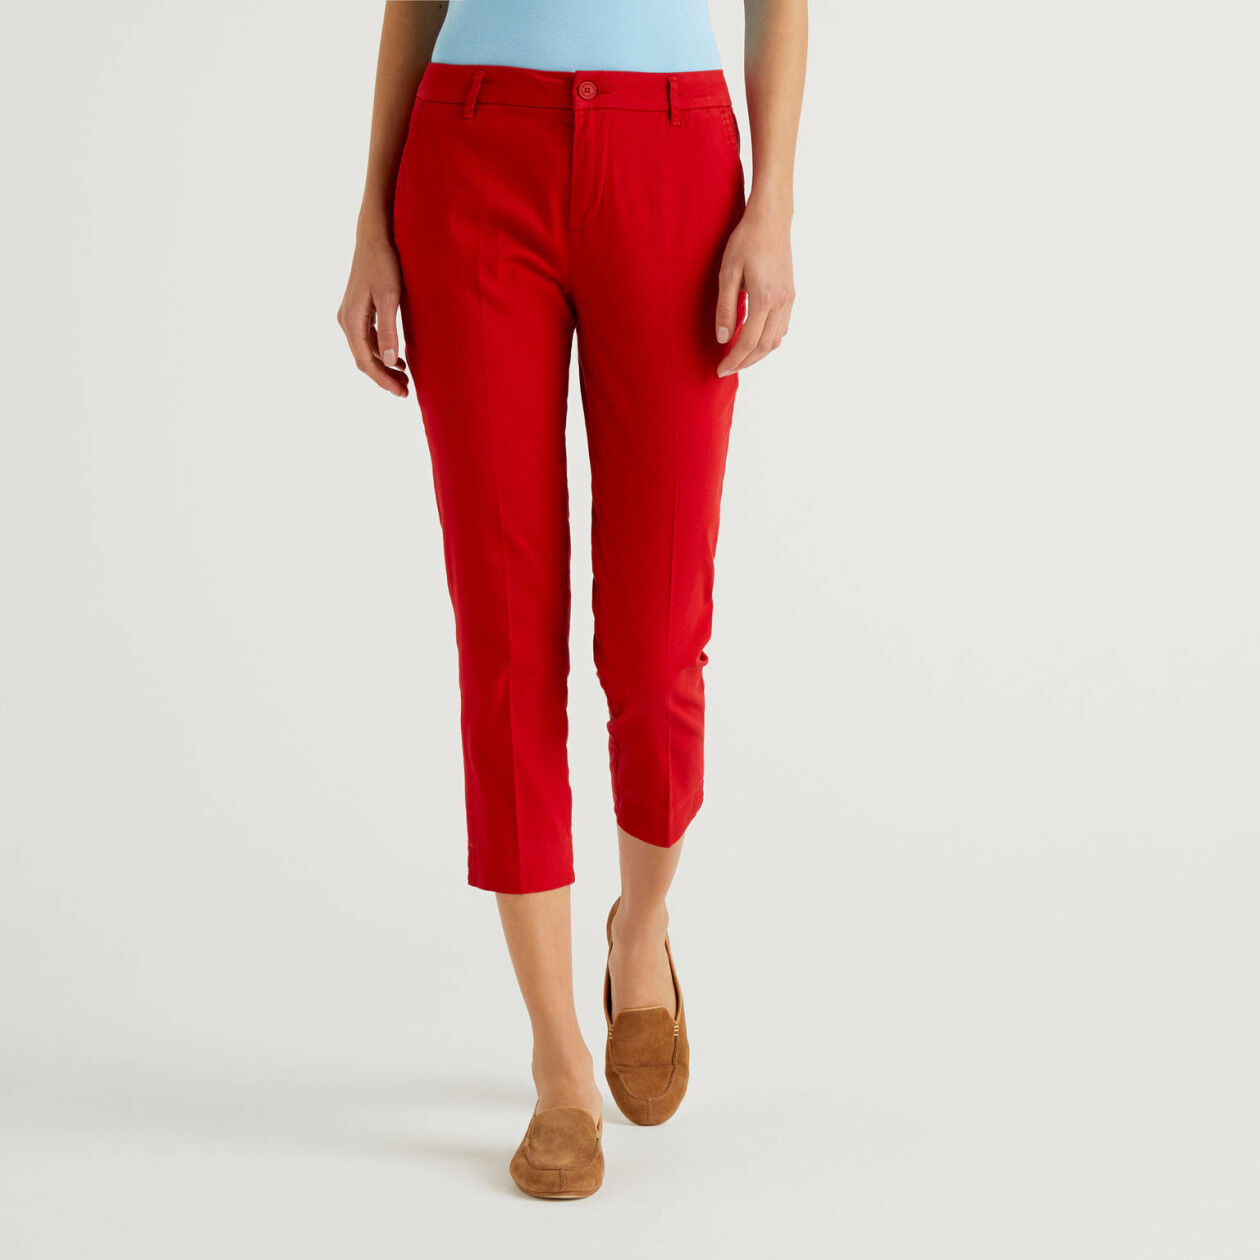 Stretch chino pants